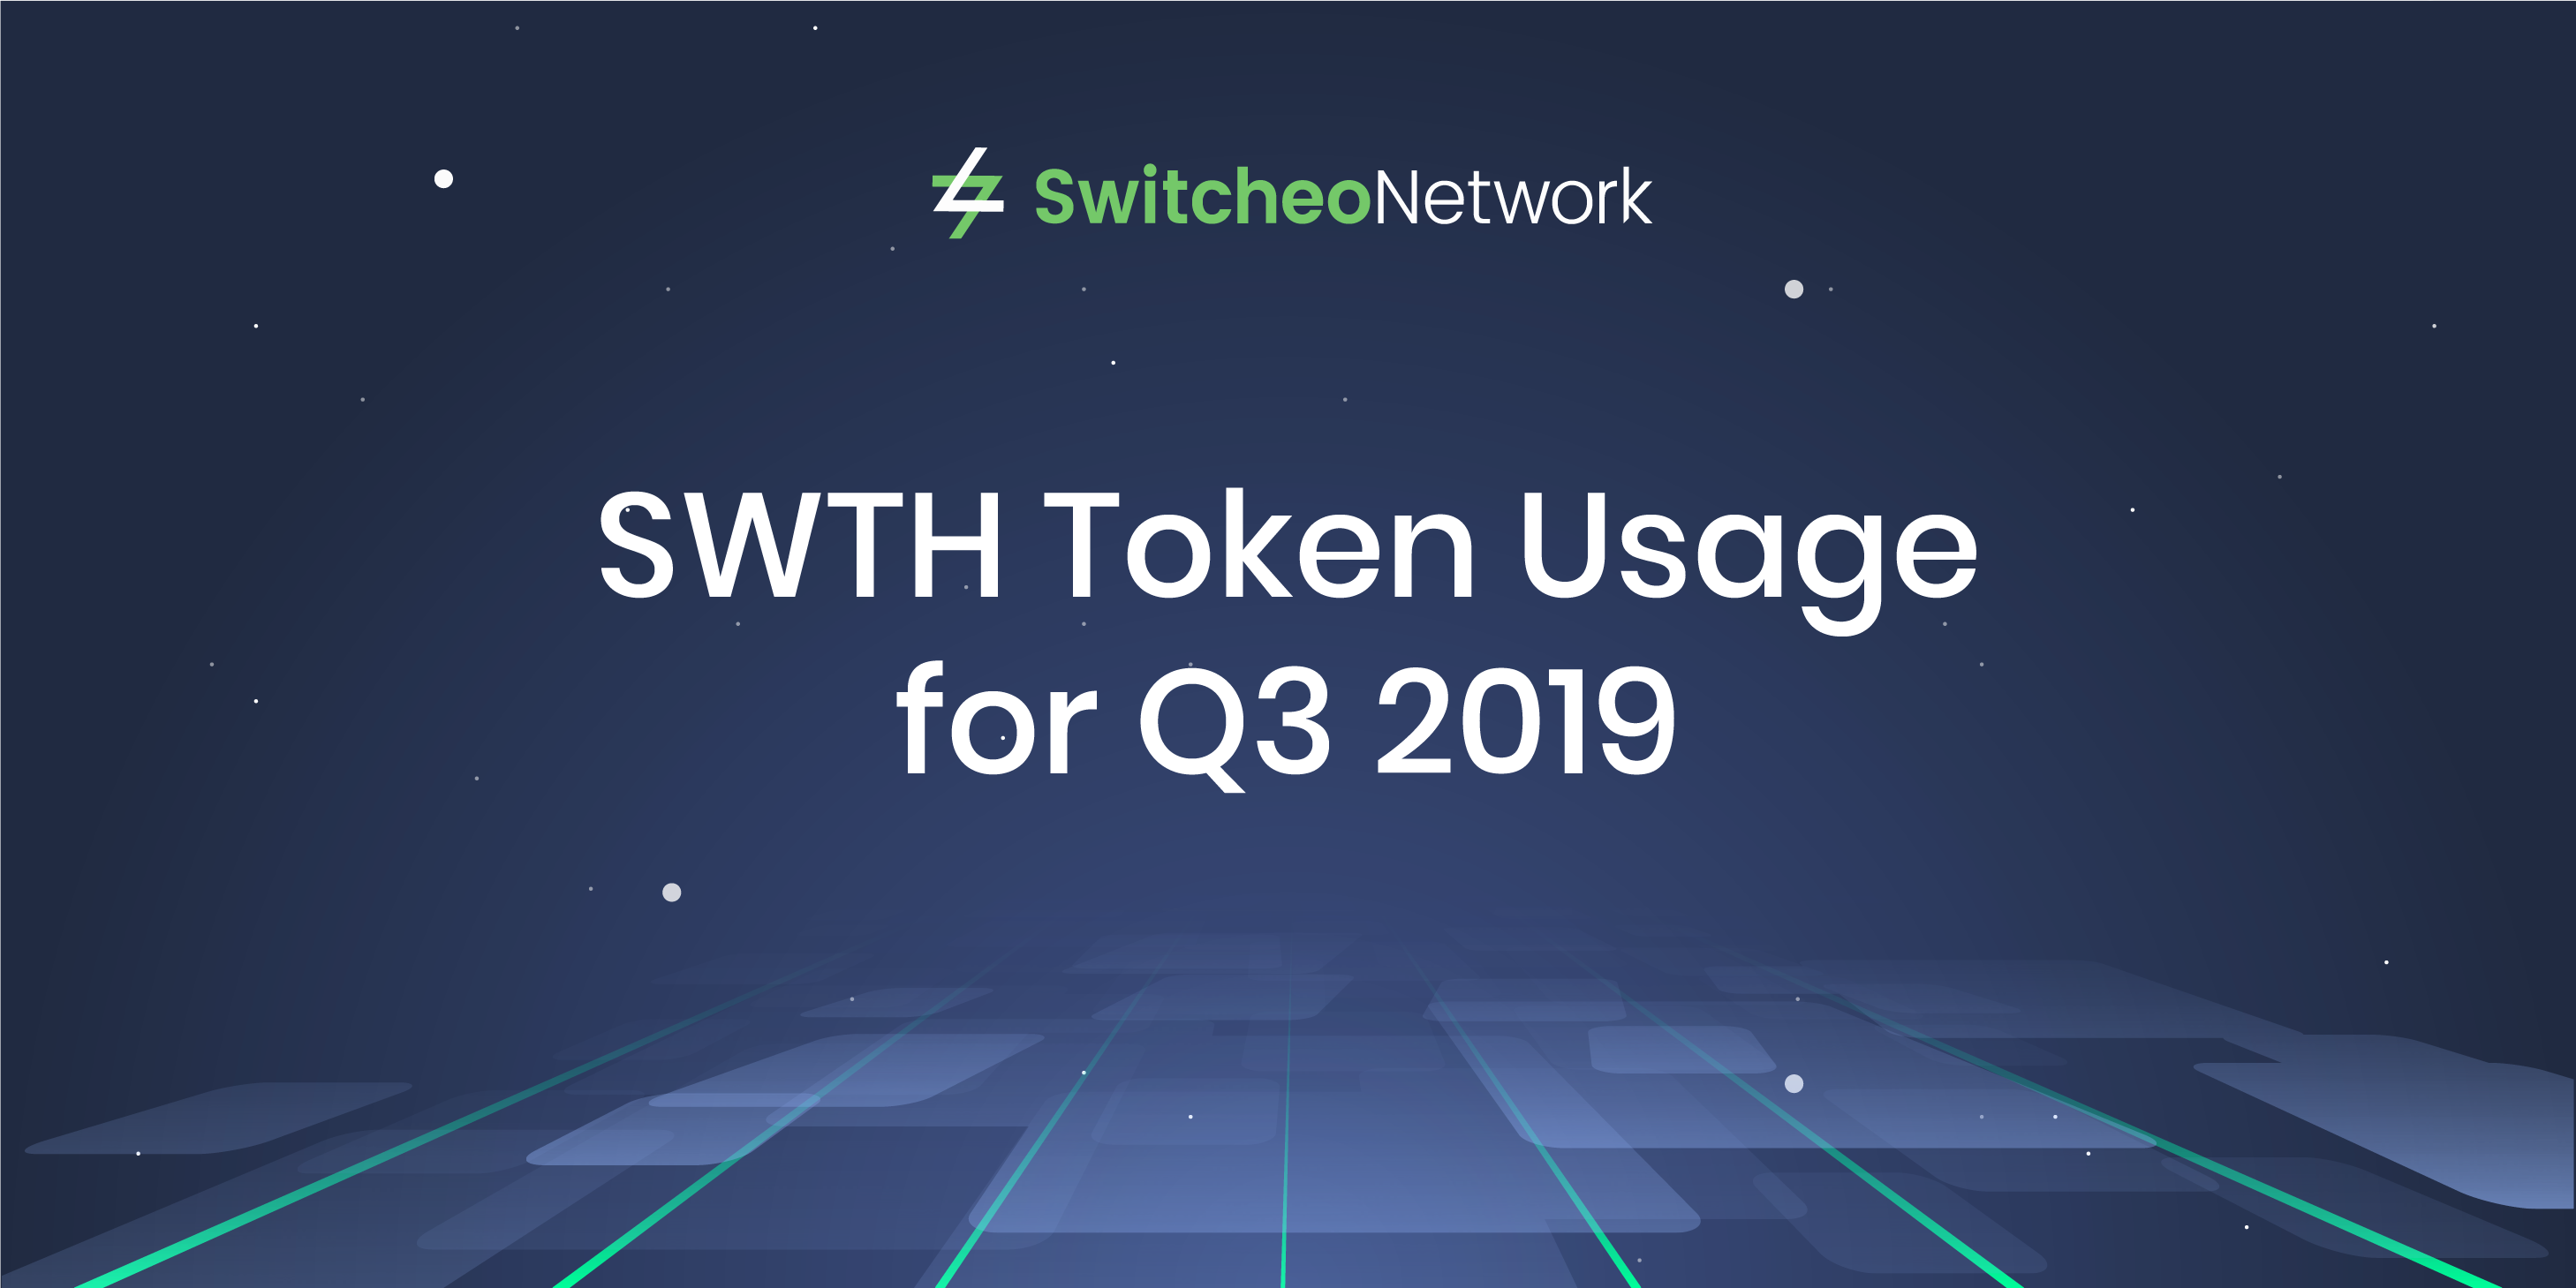 SWTH Token Usage for Q3 2019